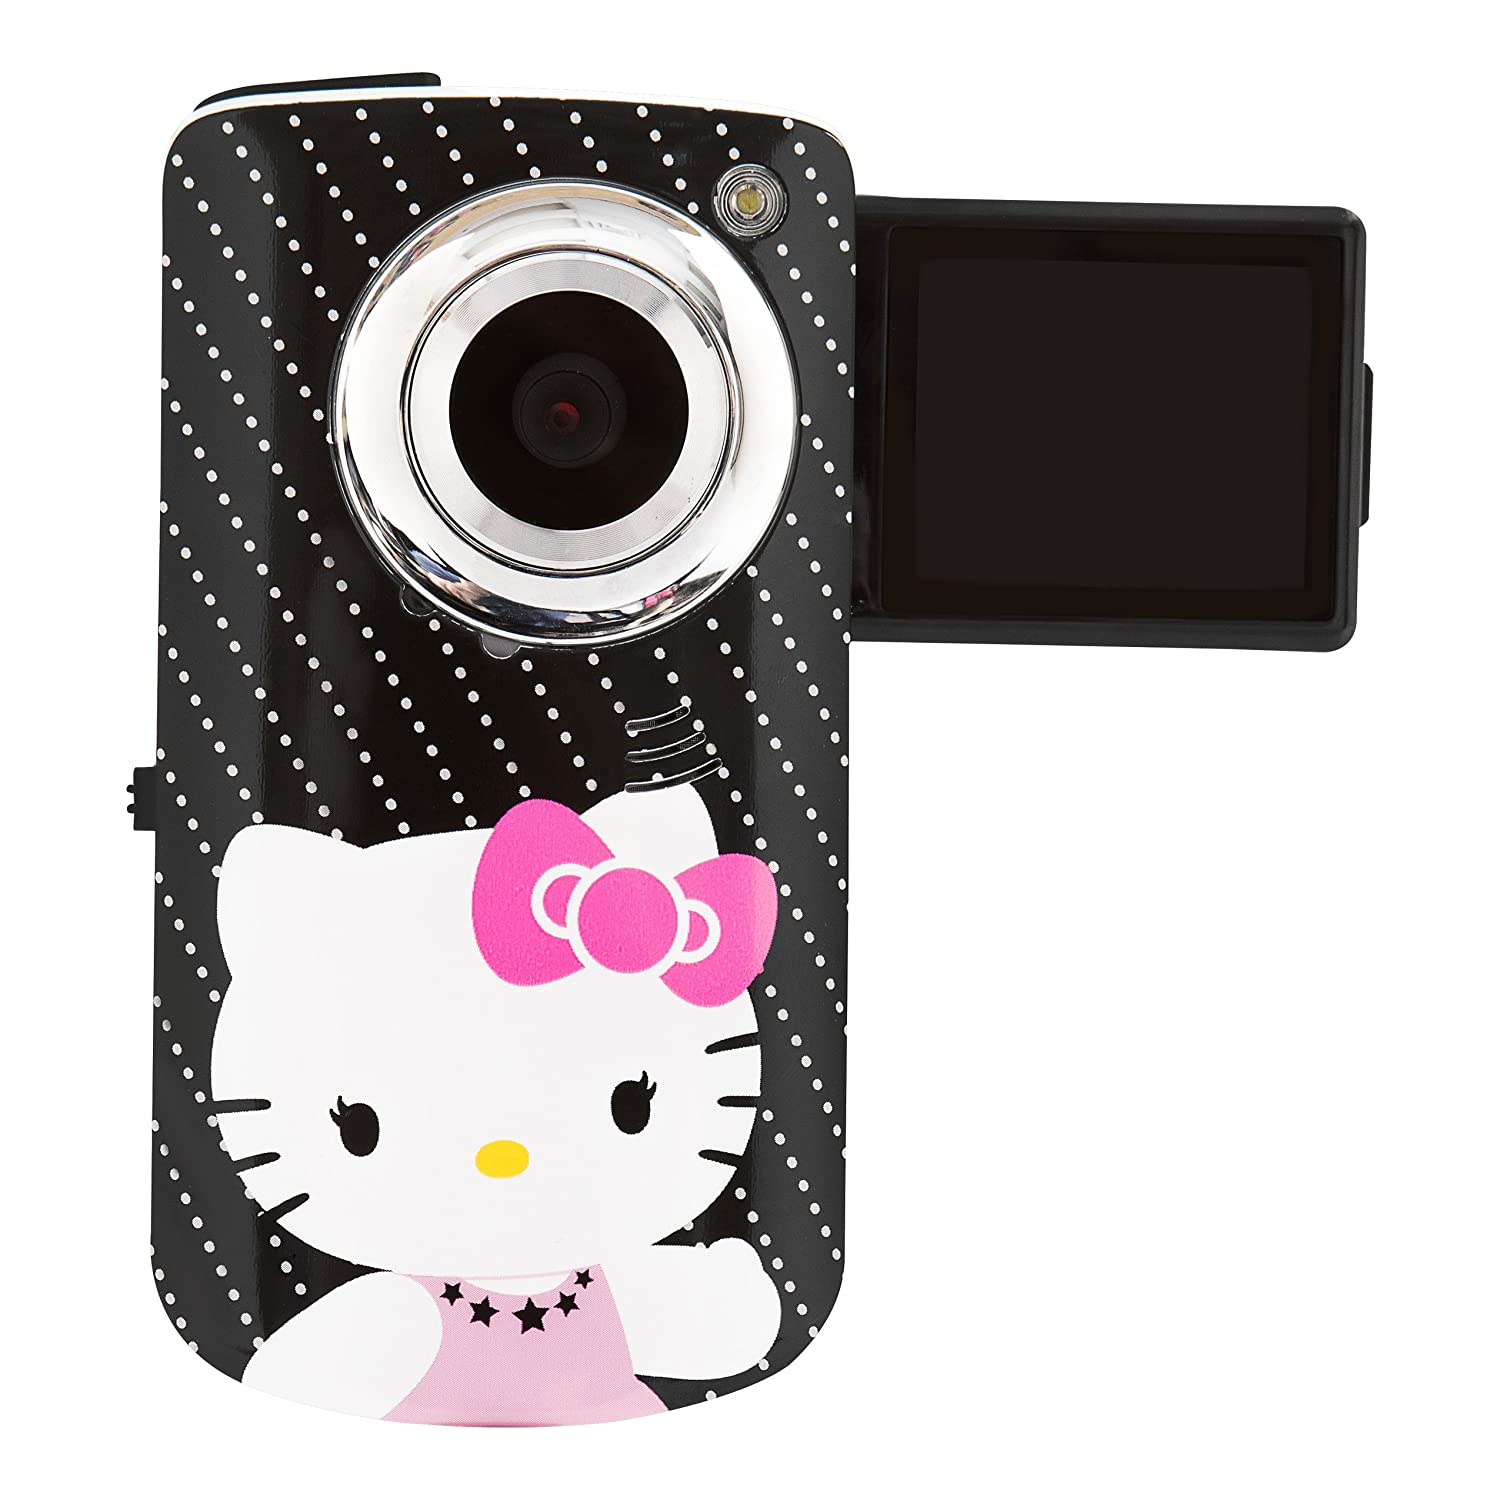 Sakar Hello Kitty Digital Video Recorder, Pink (38009) Sakar Toys CA